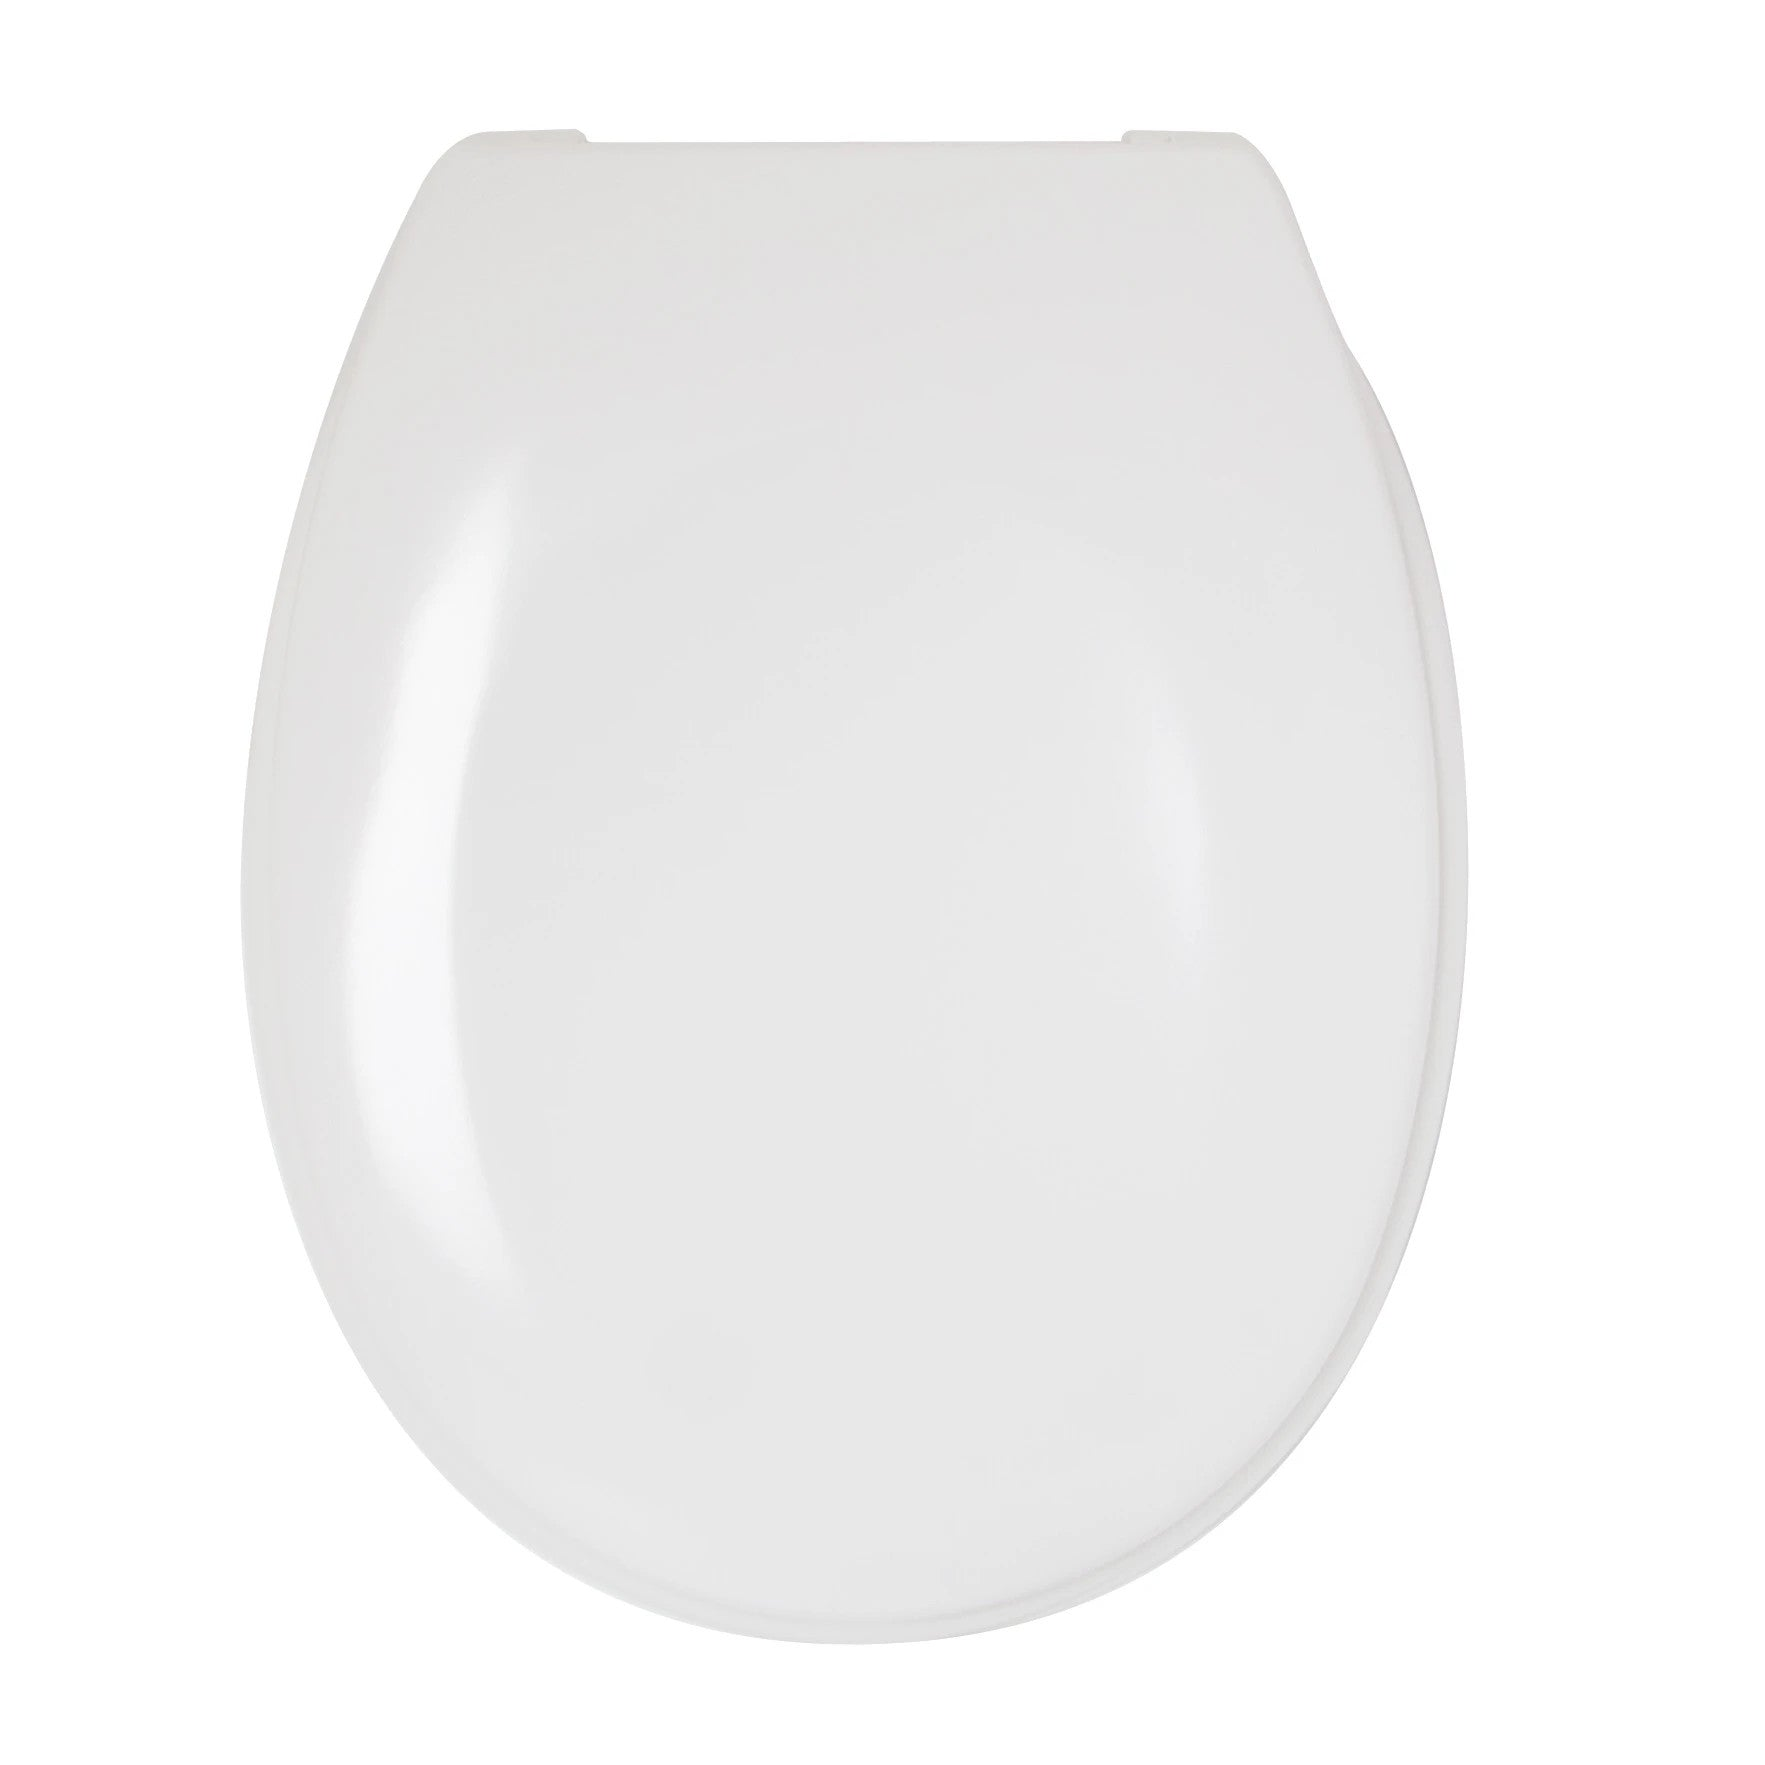 Sabichi White Slow Close Toilet Seat- 182715